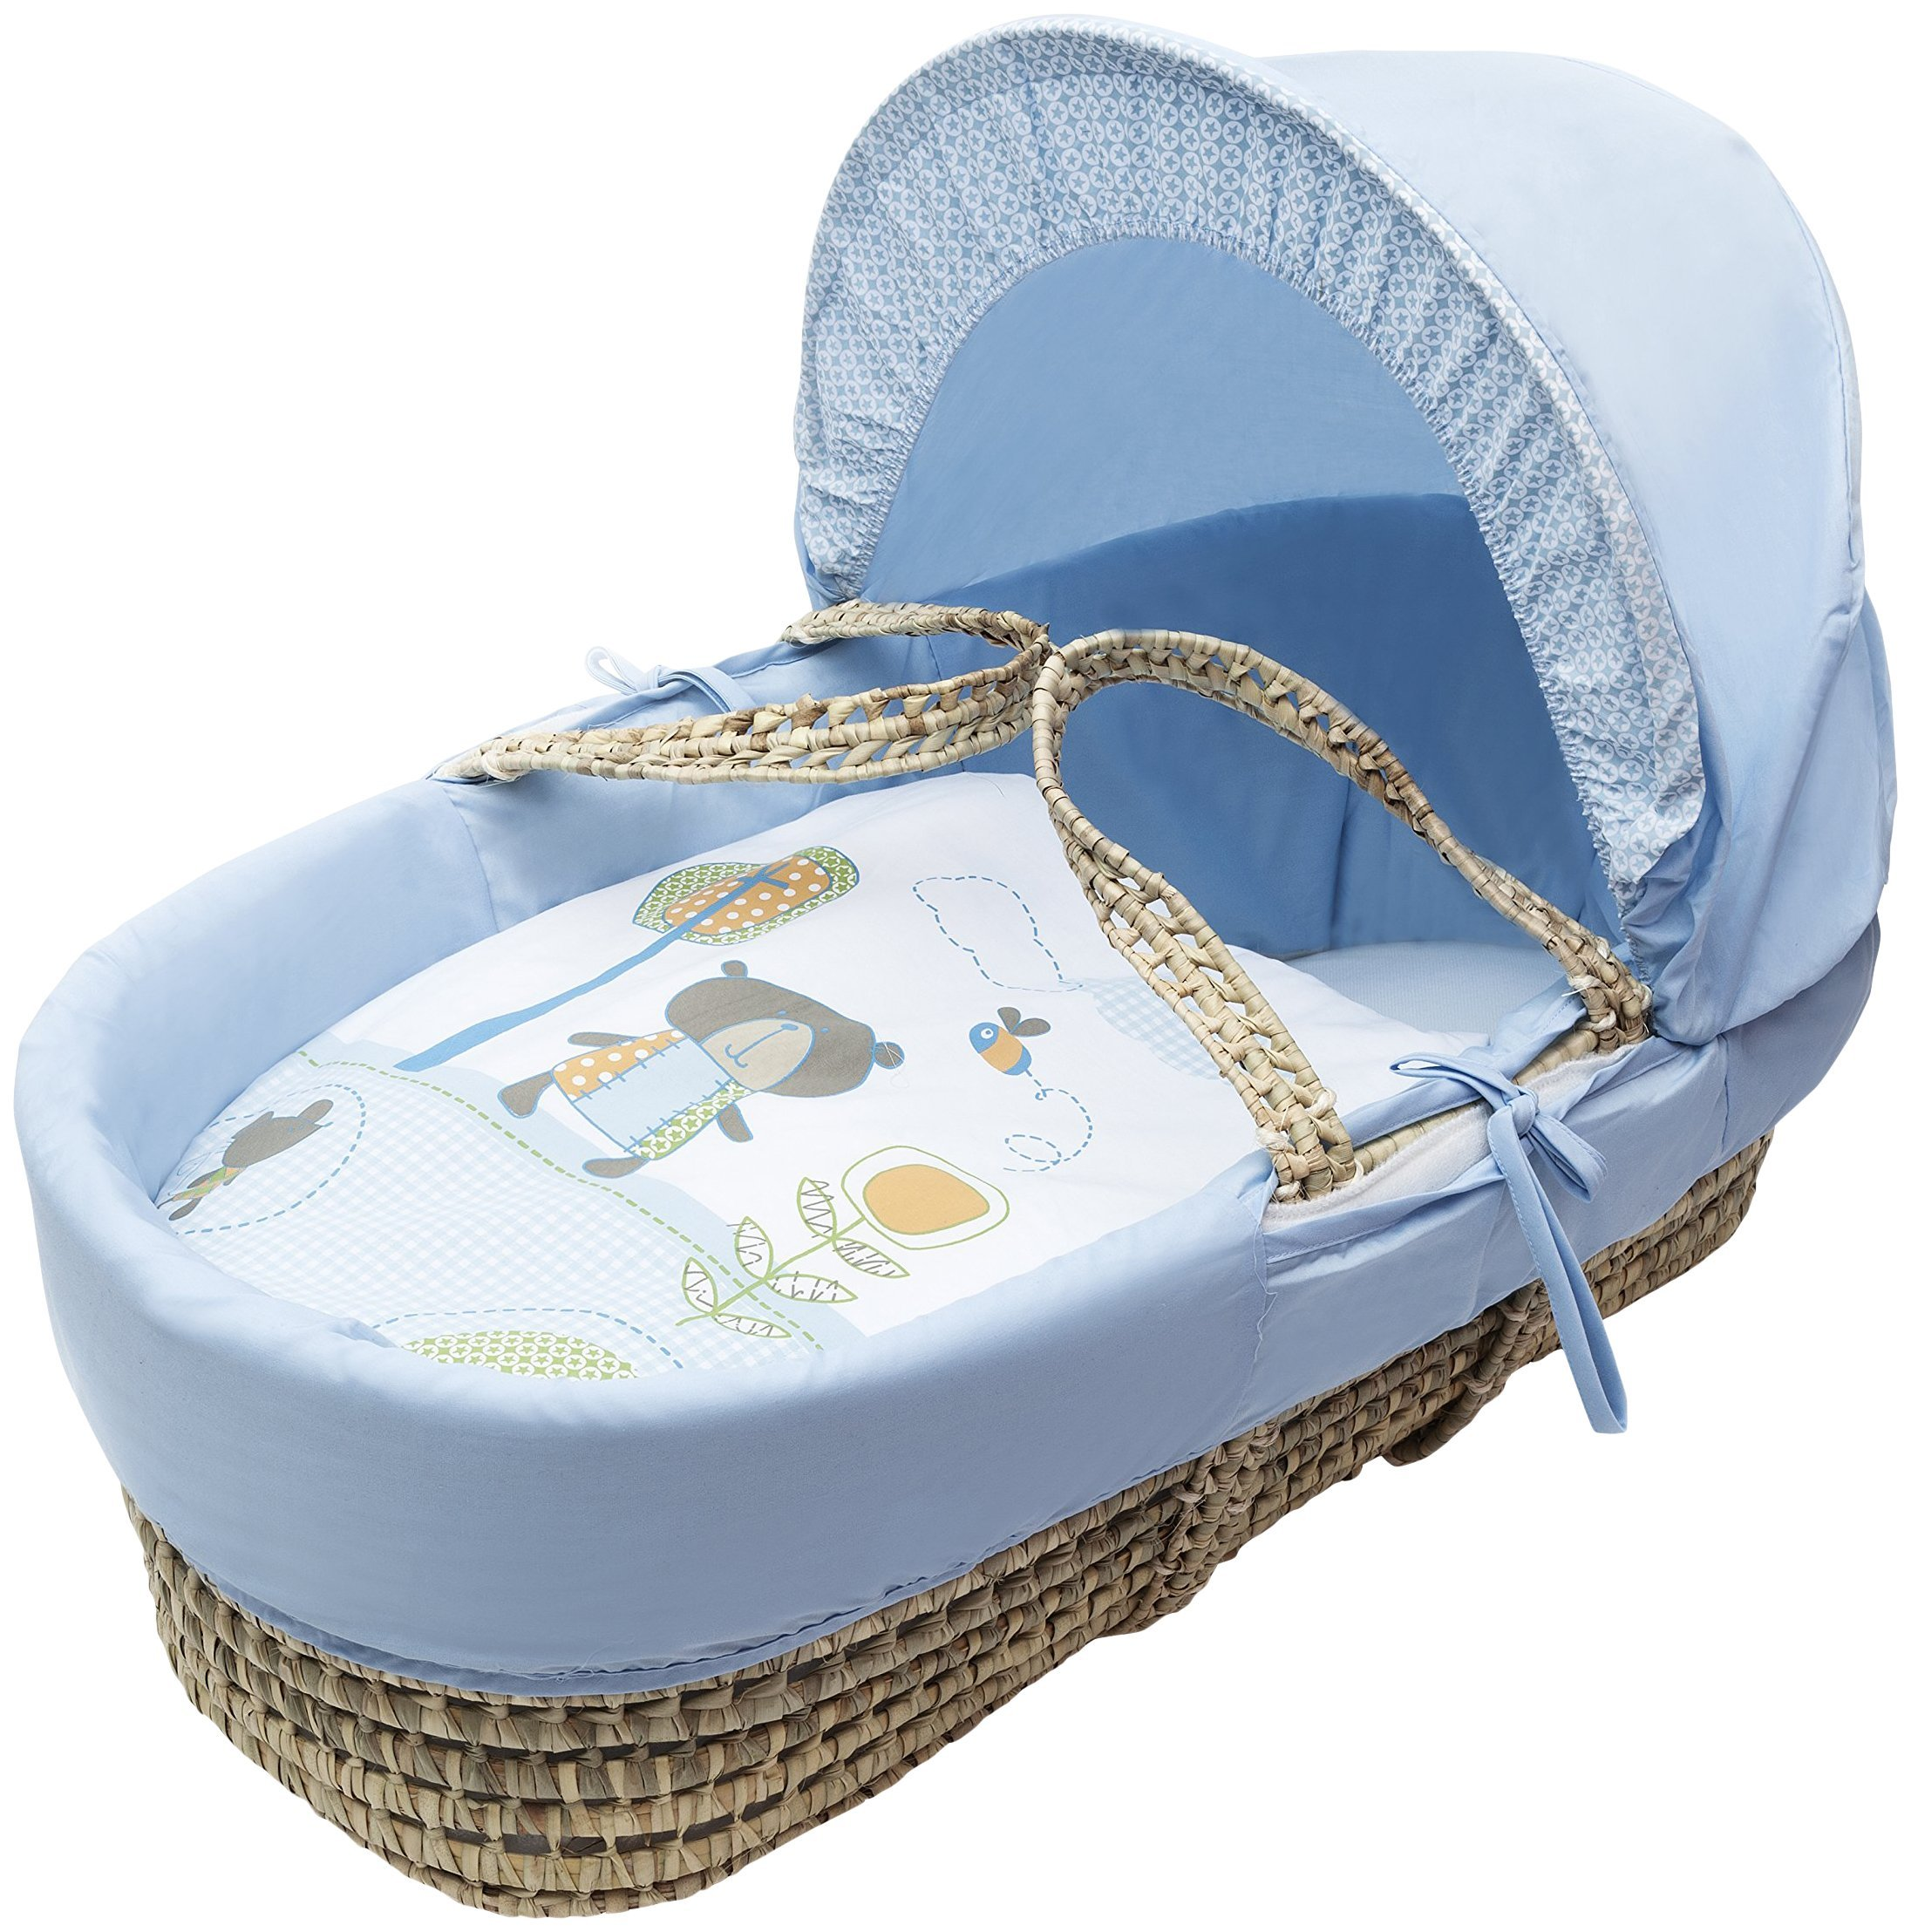 Kinder Valley Tiny Ted Moses Basket_Blue  Suitable from new-born to 6 months or up to 9kg. This Tiny Ted bedding is made from easy care poly-cotton. Washable, water resistant and breathable mattress. 1